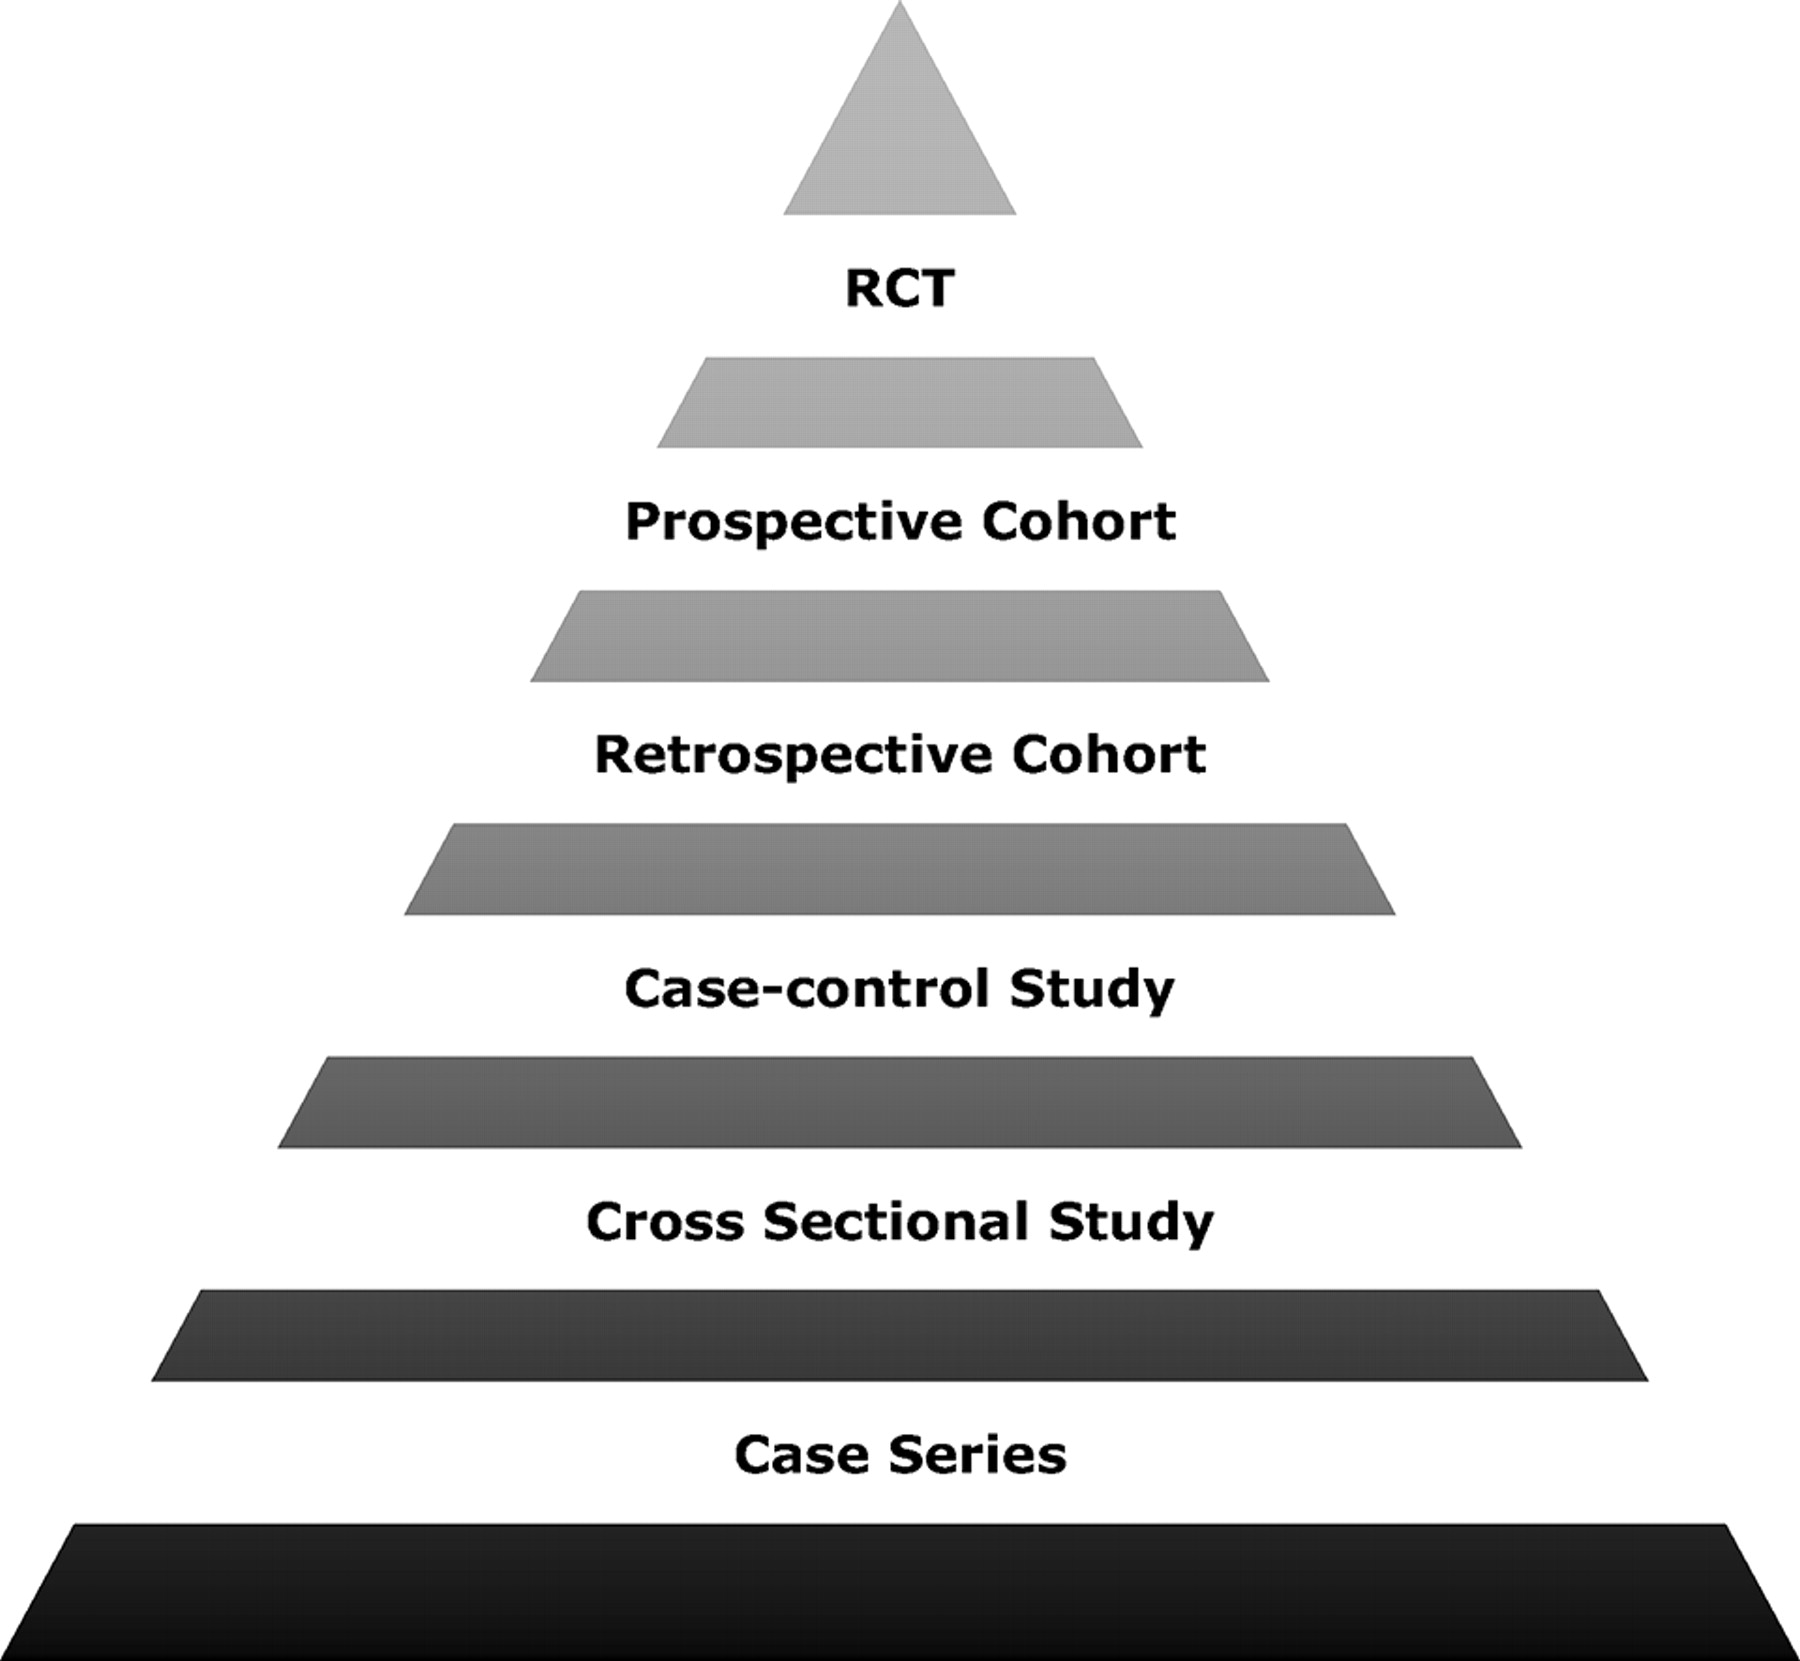 image of a pyramid of evidence